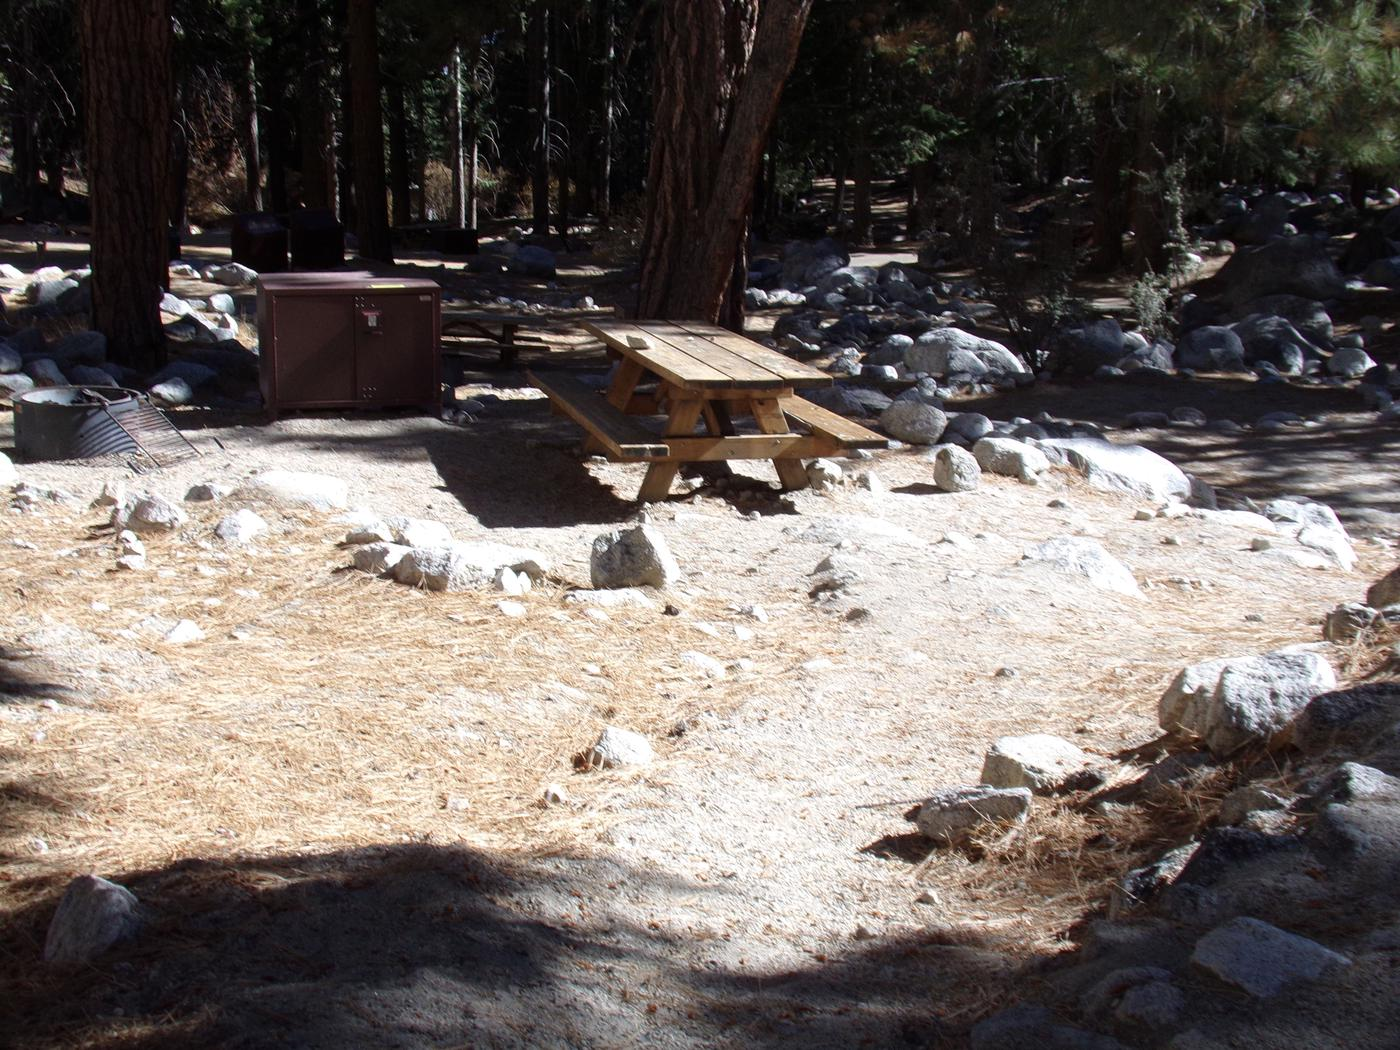 Mt. Whitney Portal Campground site #25 featuring the mountain top setting picnic area with fire pit.